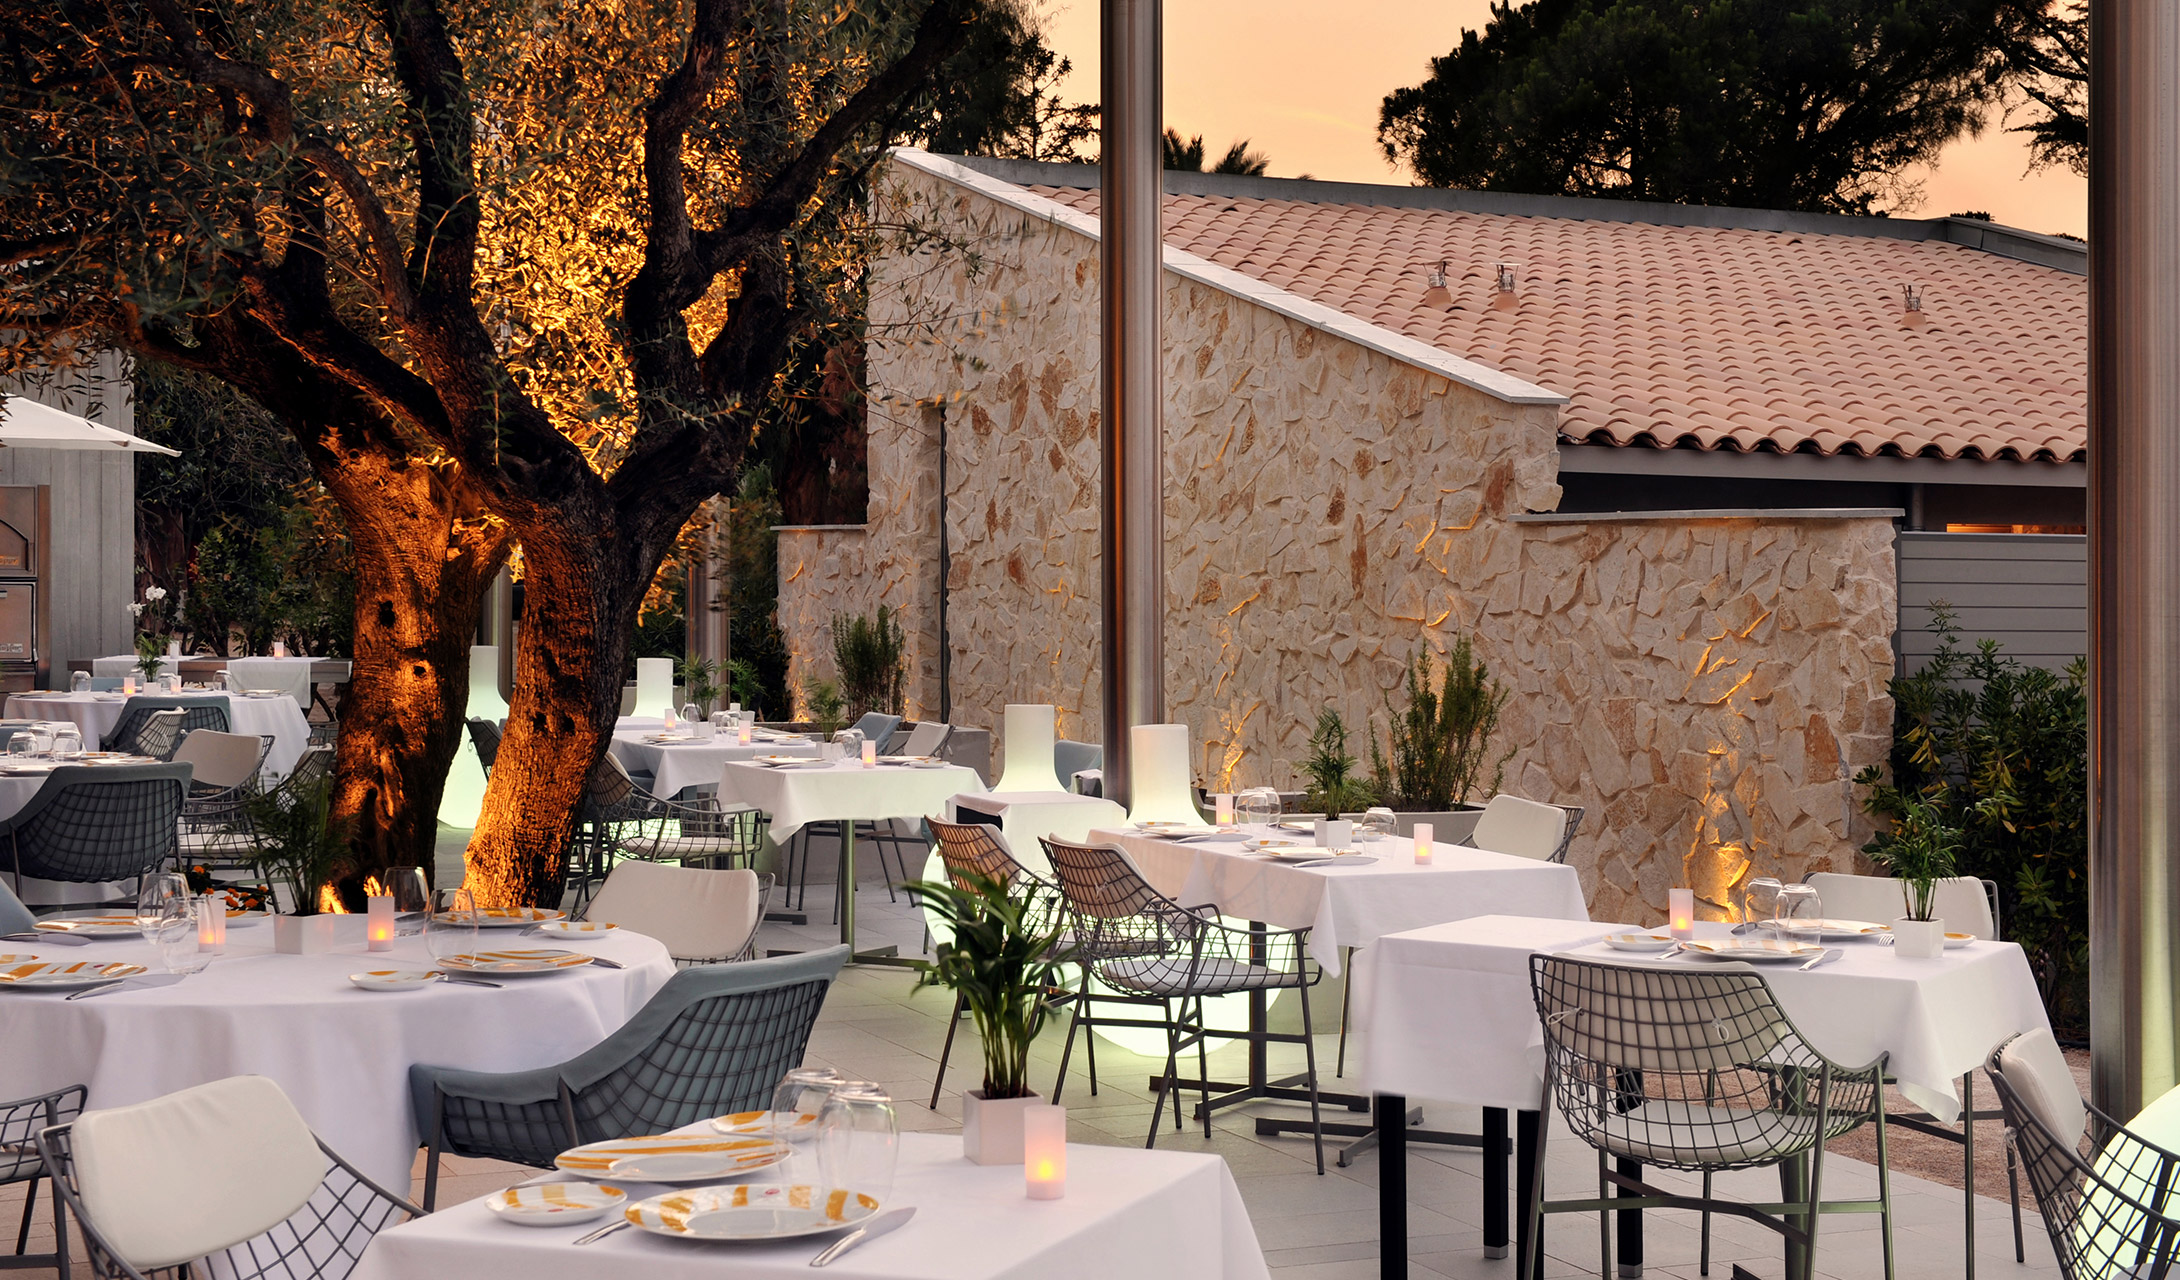 Hotel sezz saint tropez france design hotels for Hotels design en france